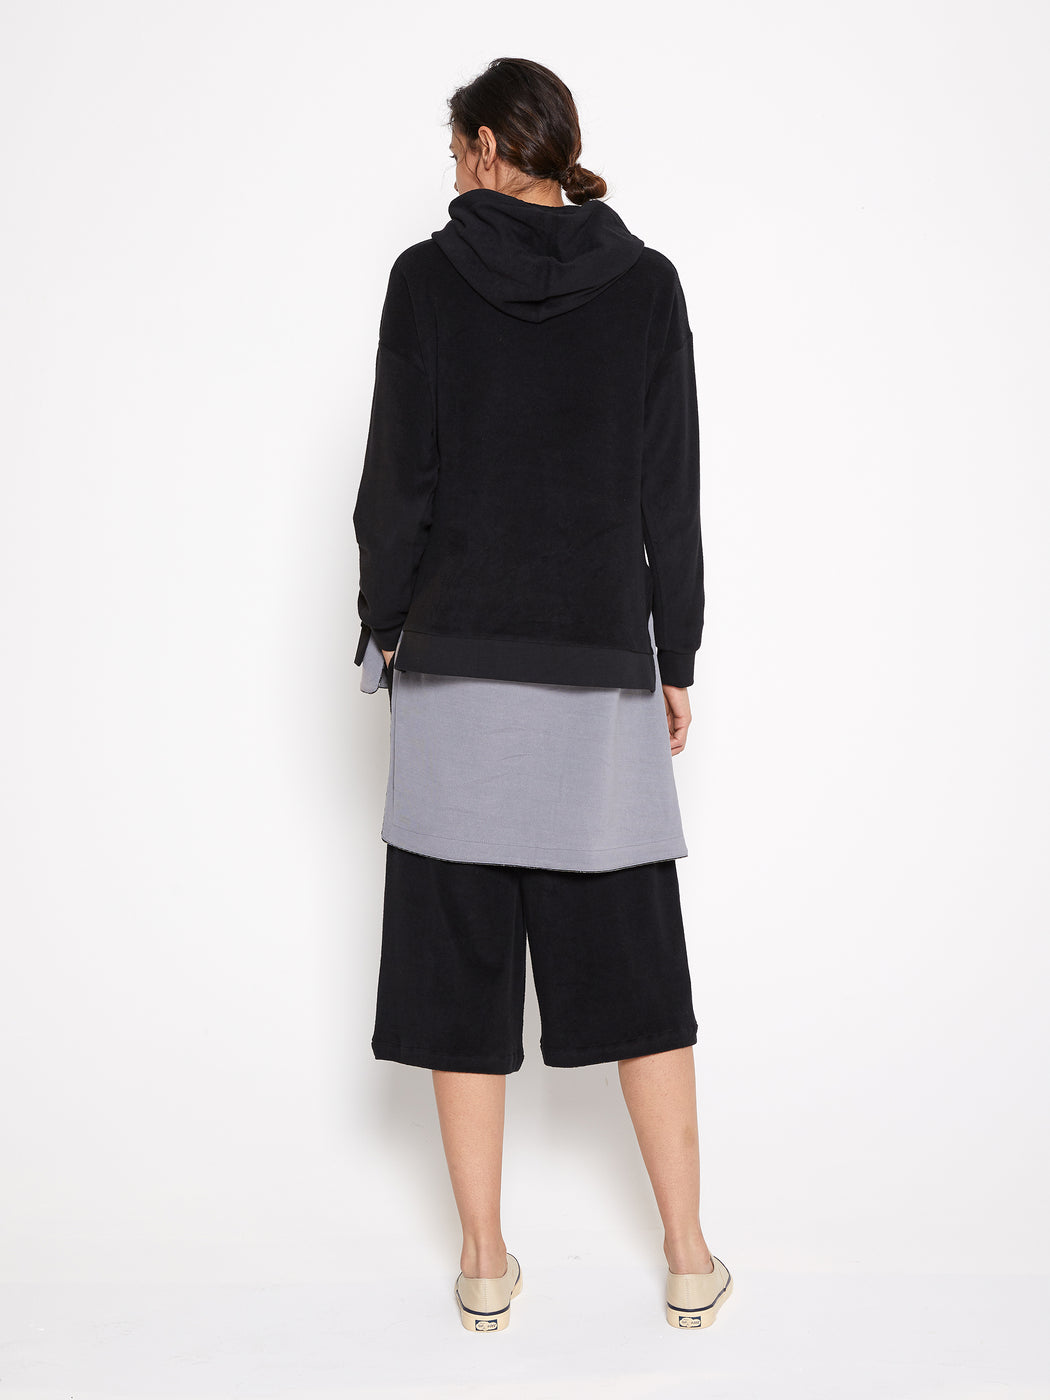 Model wearing Women Draped Collar Pullover, made with Organic Cotton in Black (Back View)